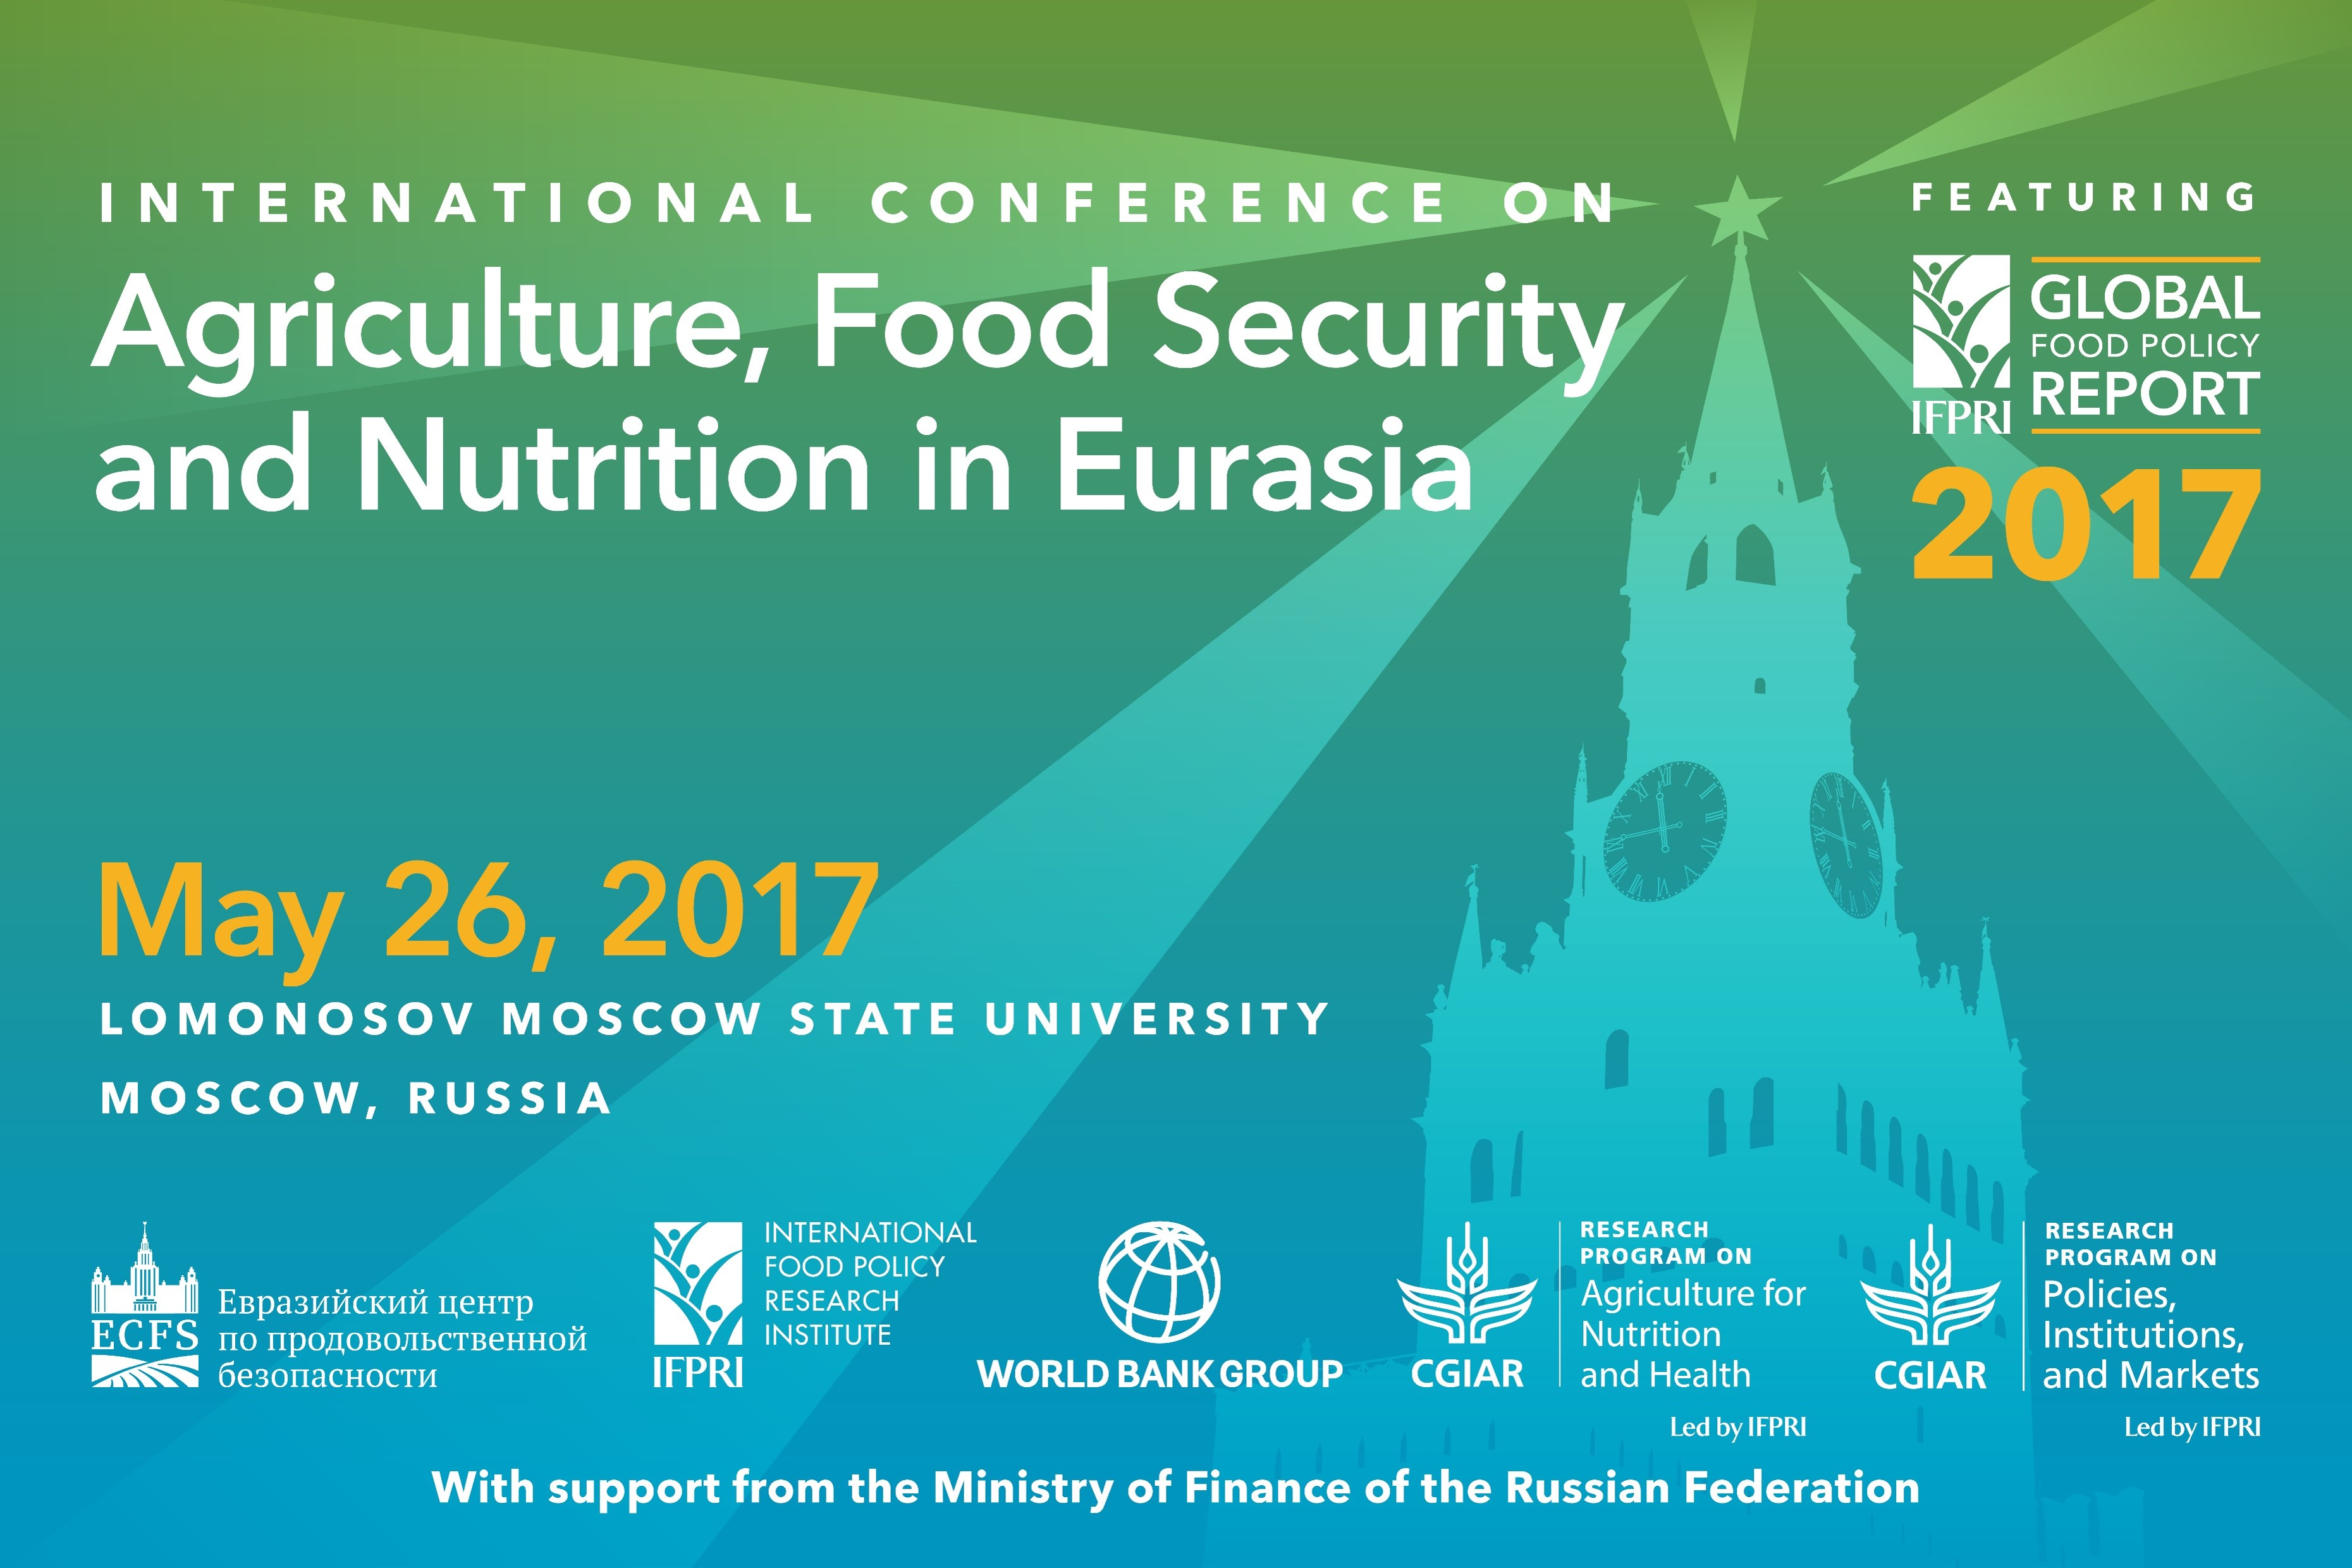 International Conference on Agriculture, Food Security, and